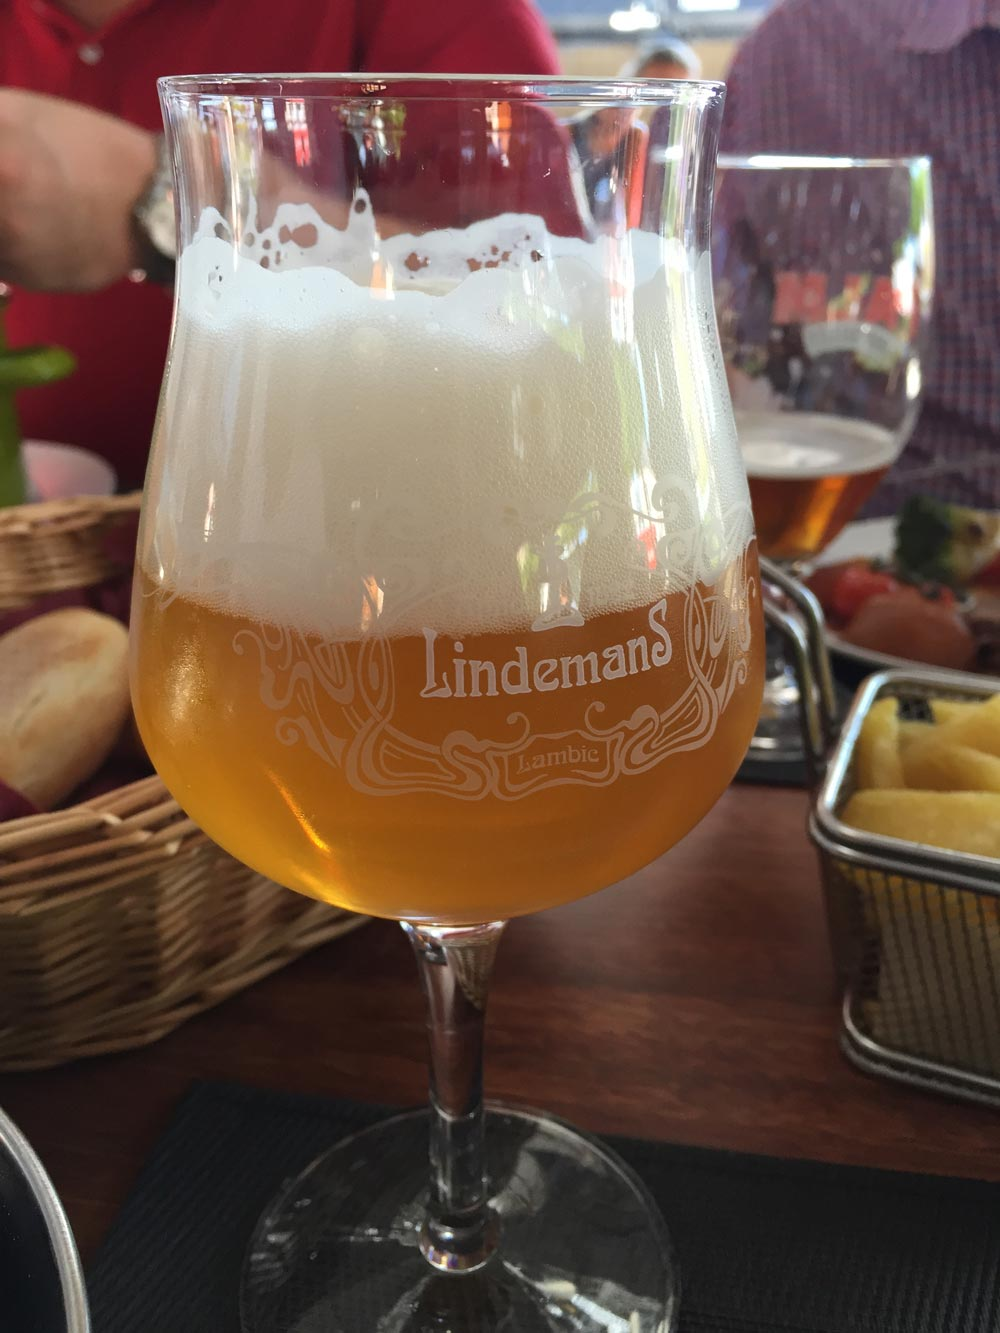 belgisches bier lindemans lambic apple